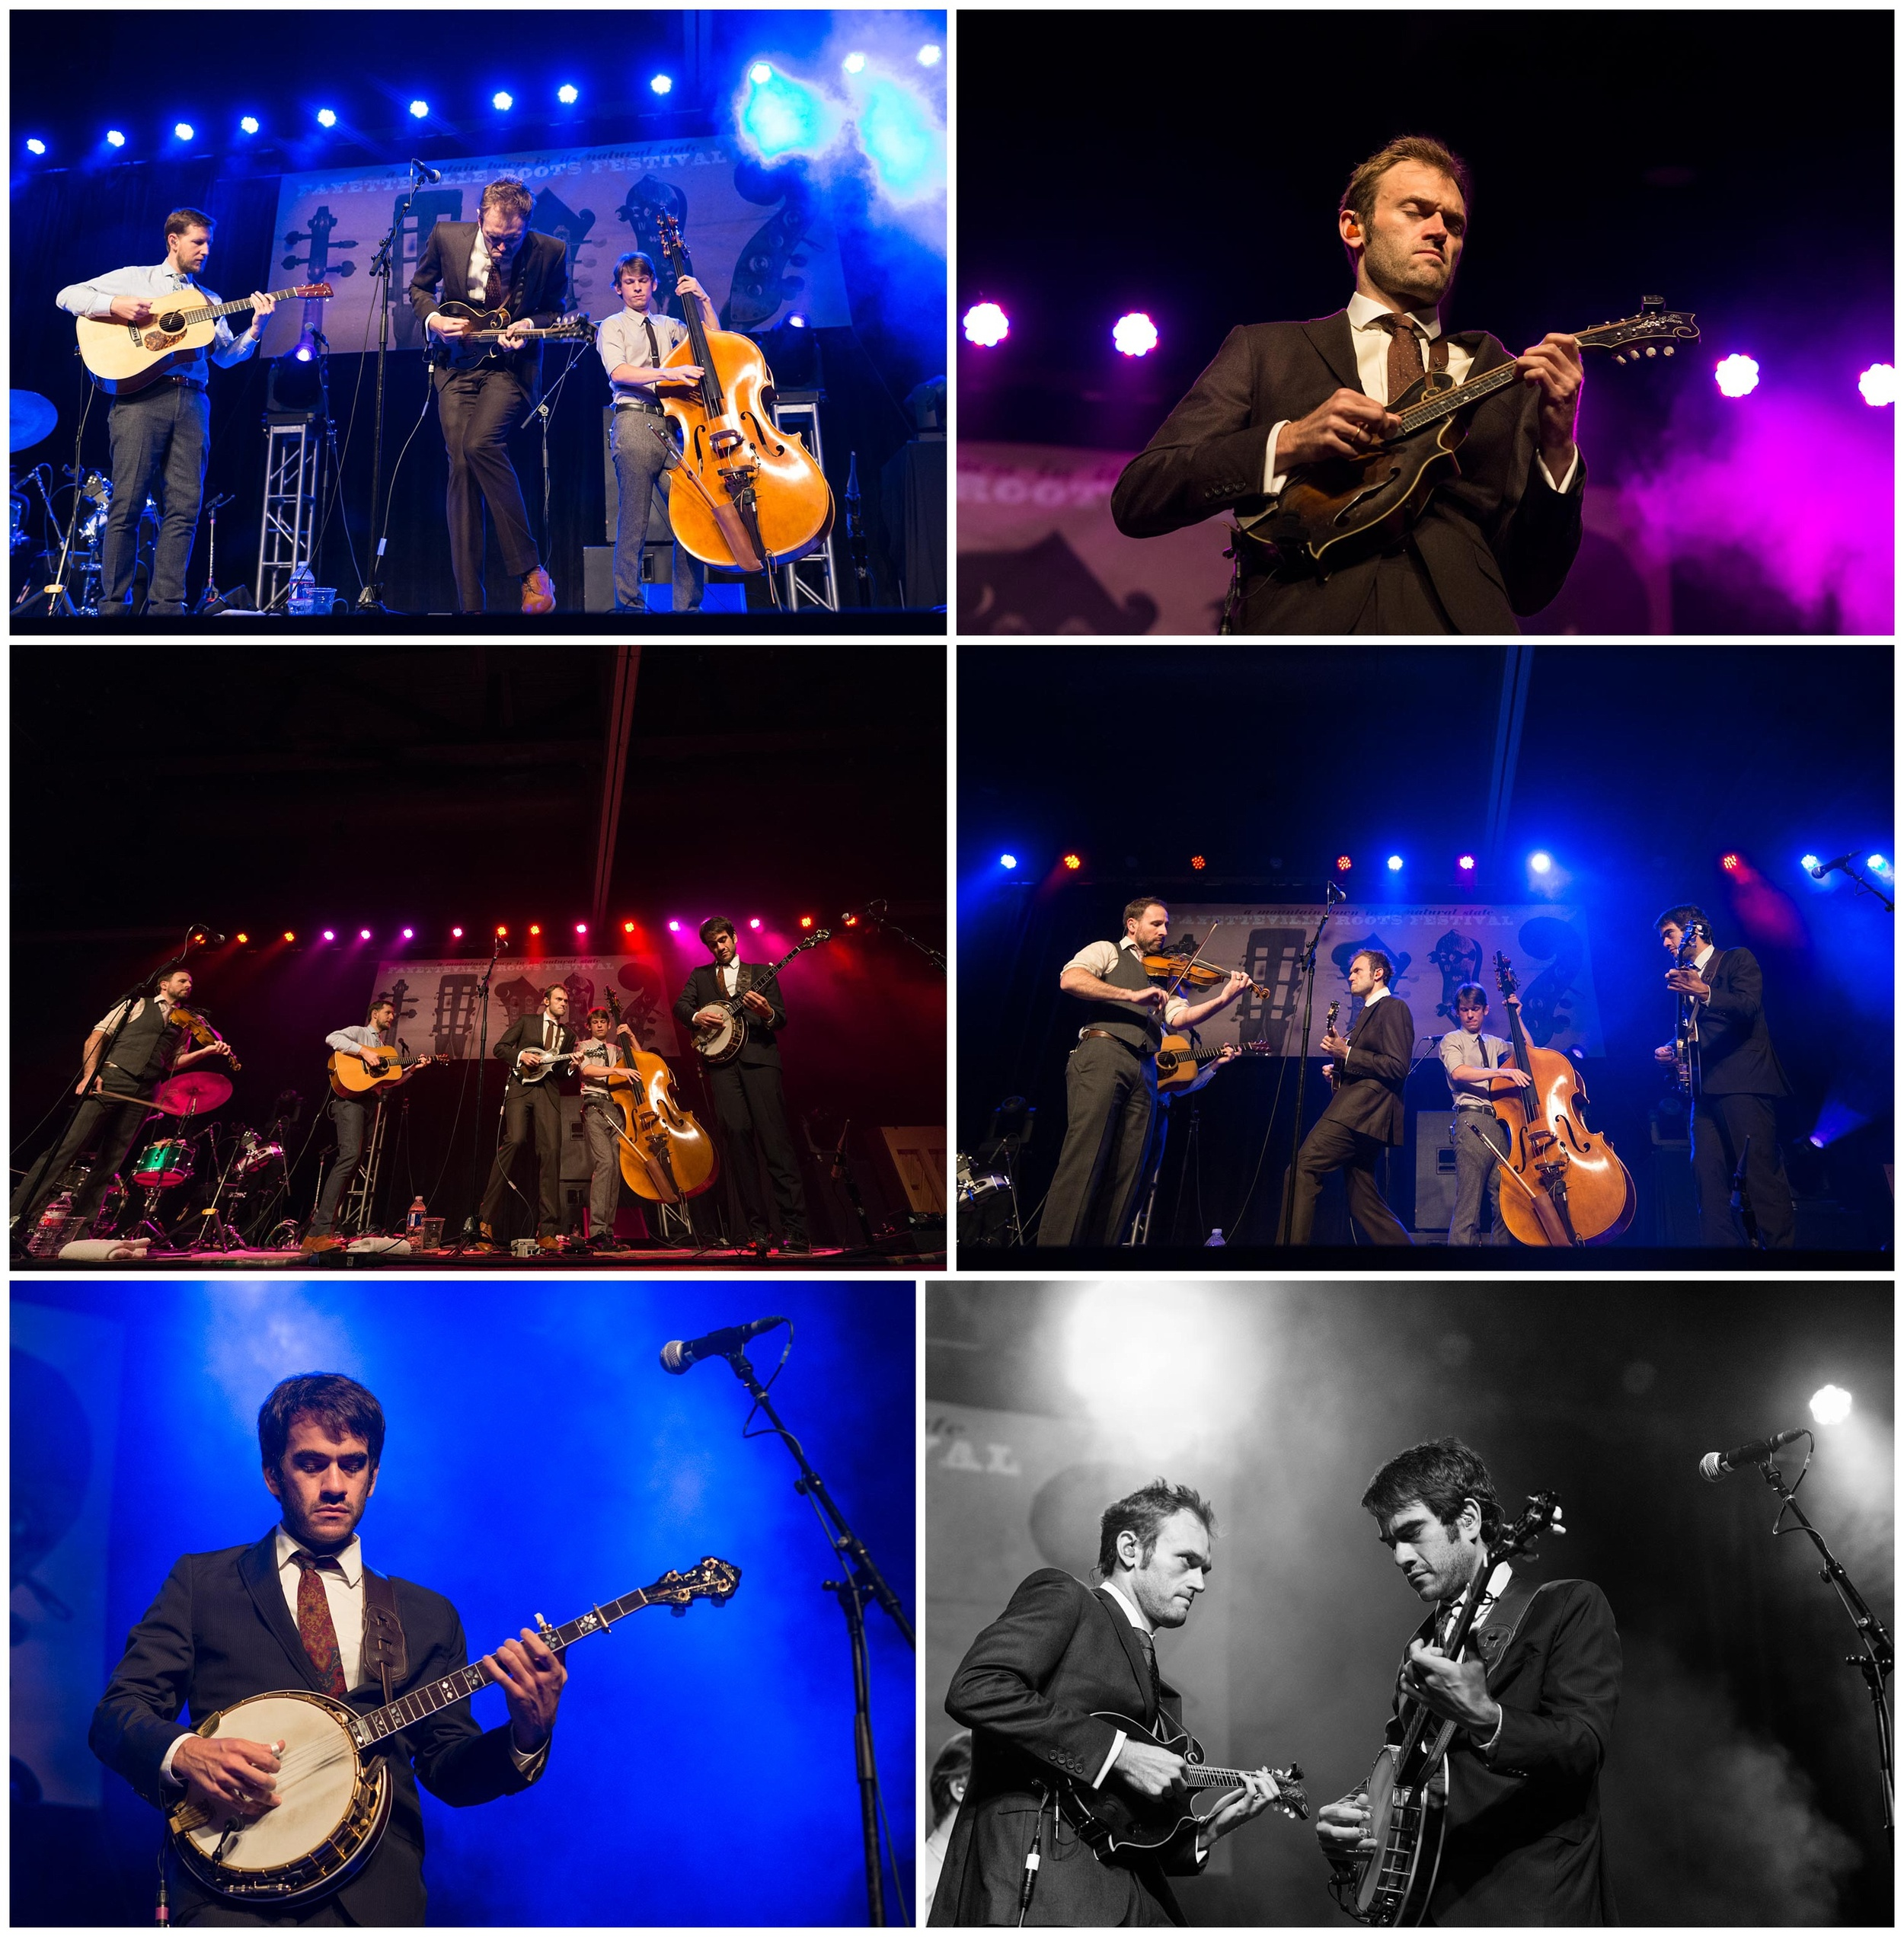 Sometimes only getting to shoot three songs is a blessing! The Punch Brothers were so fun to shoot I could have easily missed the 2 hours they played by getting caught up in my camera. Instead I got to knock out an awesome set then kick back and enjoy the show.